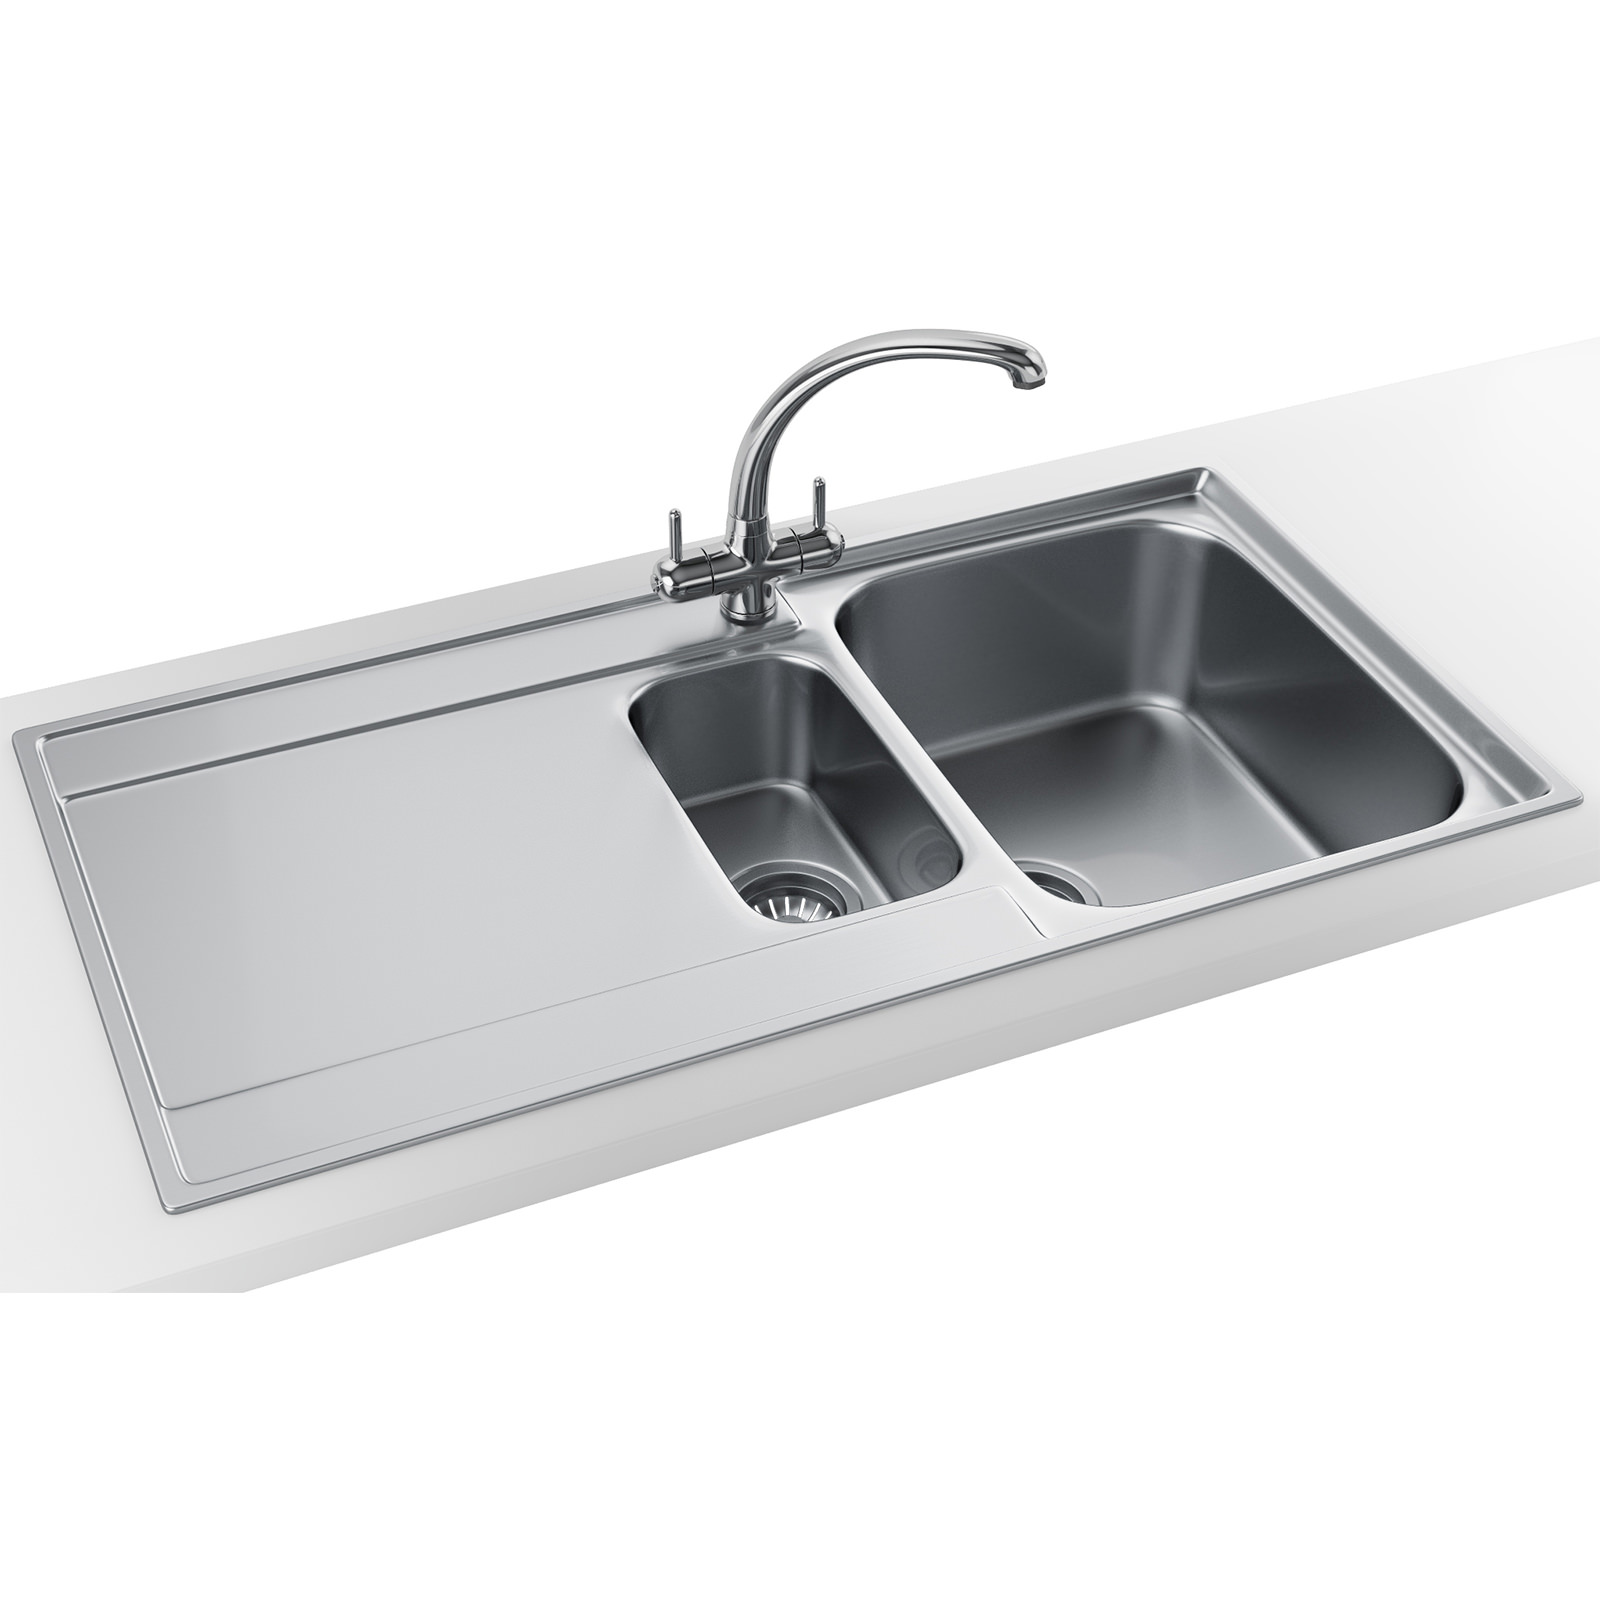 Franke Stainless Steel Sink : Franke Maris Slim-Top Propack MRX 251 Stainless Steel Kitchen Sink And ...